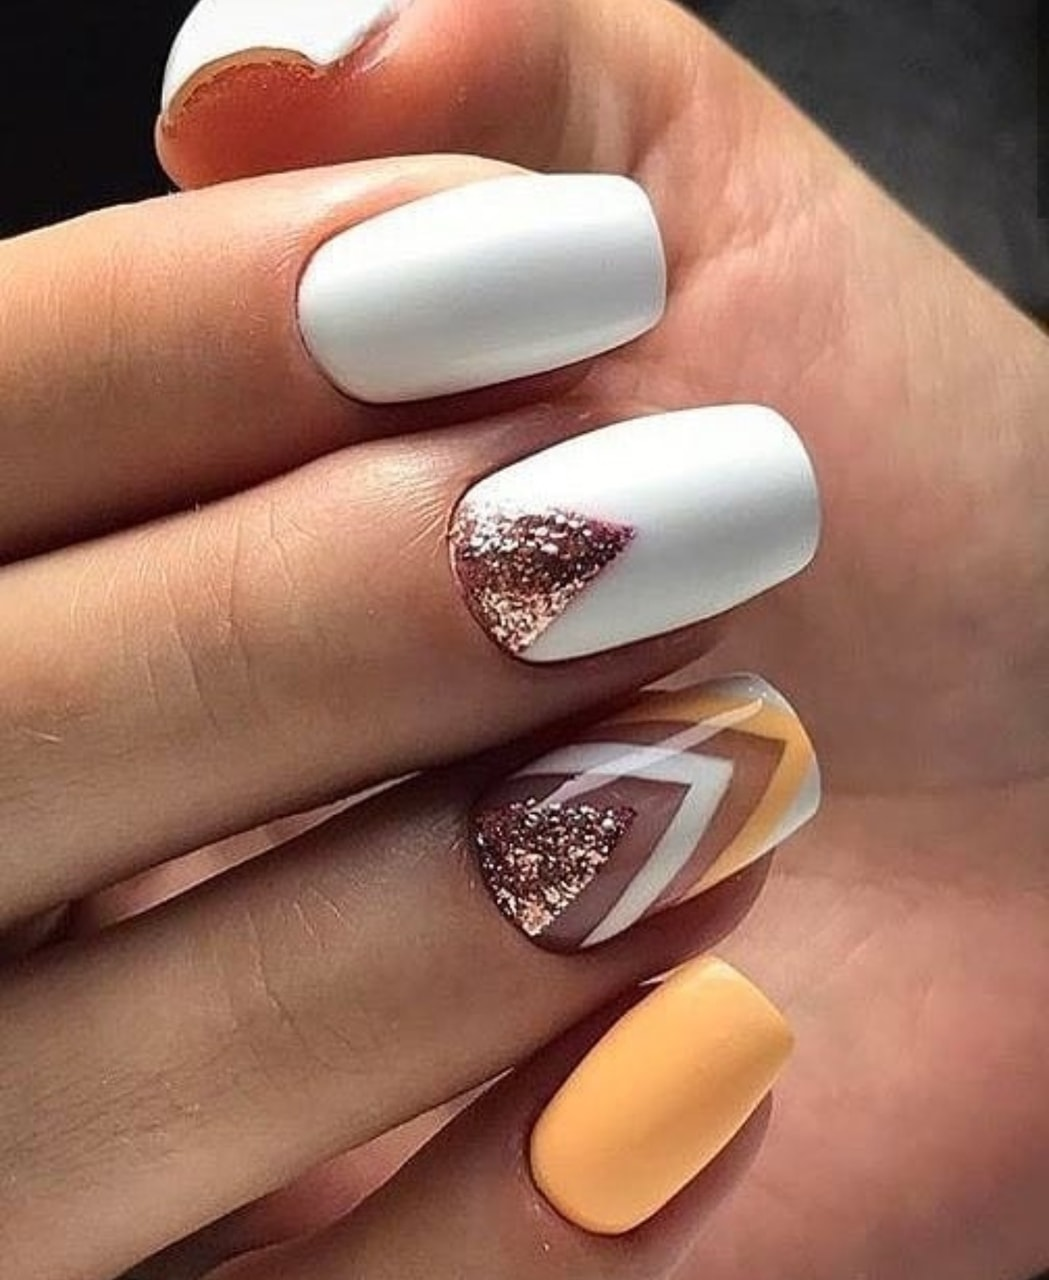 Fashion Stylish Nail Art And Nails Image 6032438 On Favim Com